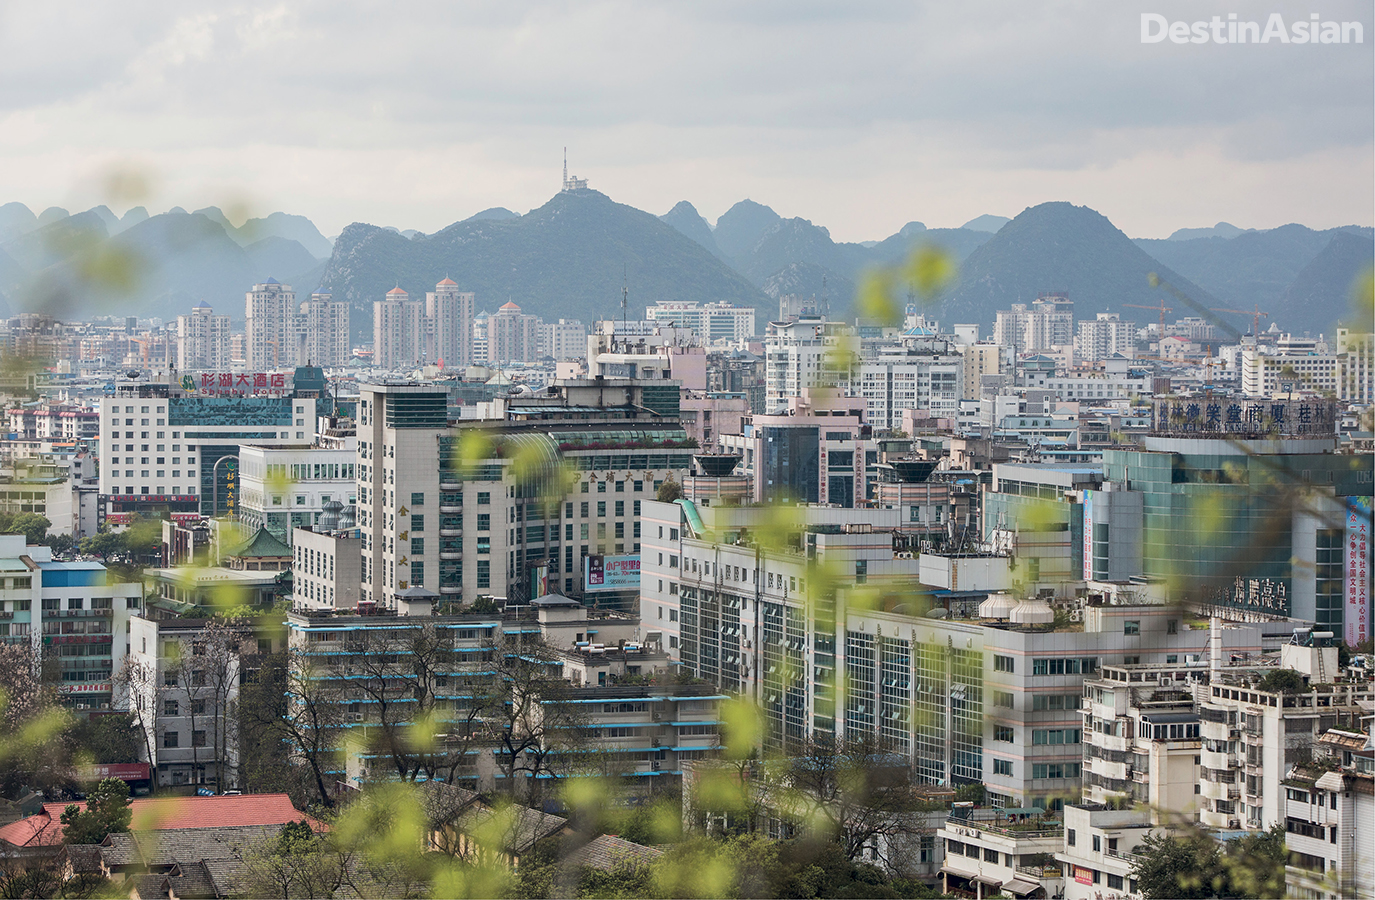 Overlooking Guilin City from its central hill, the Solitary Beauty Peak.